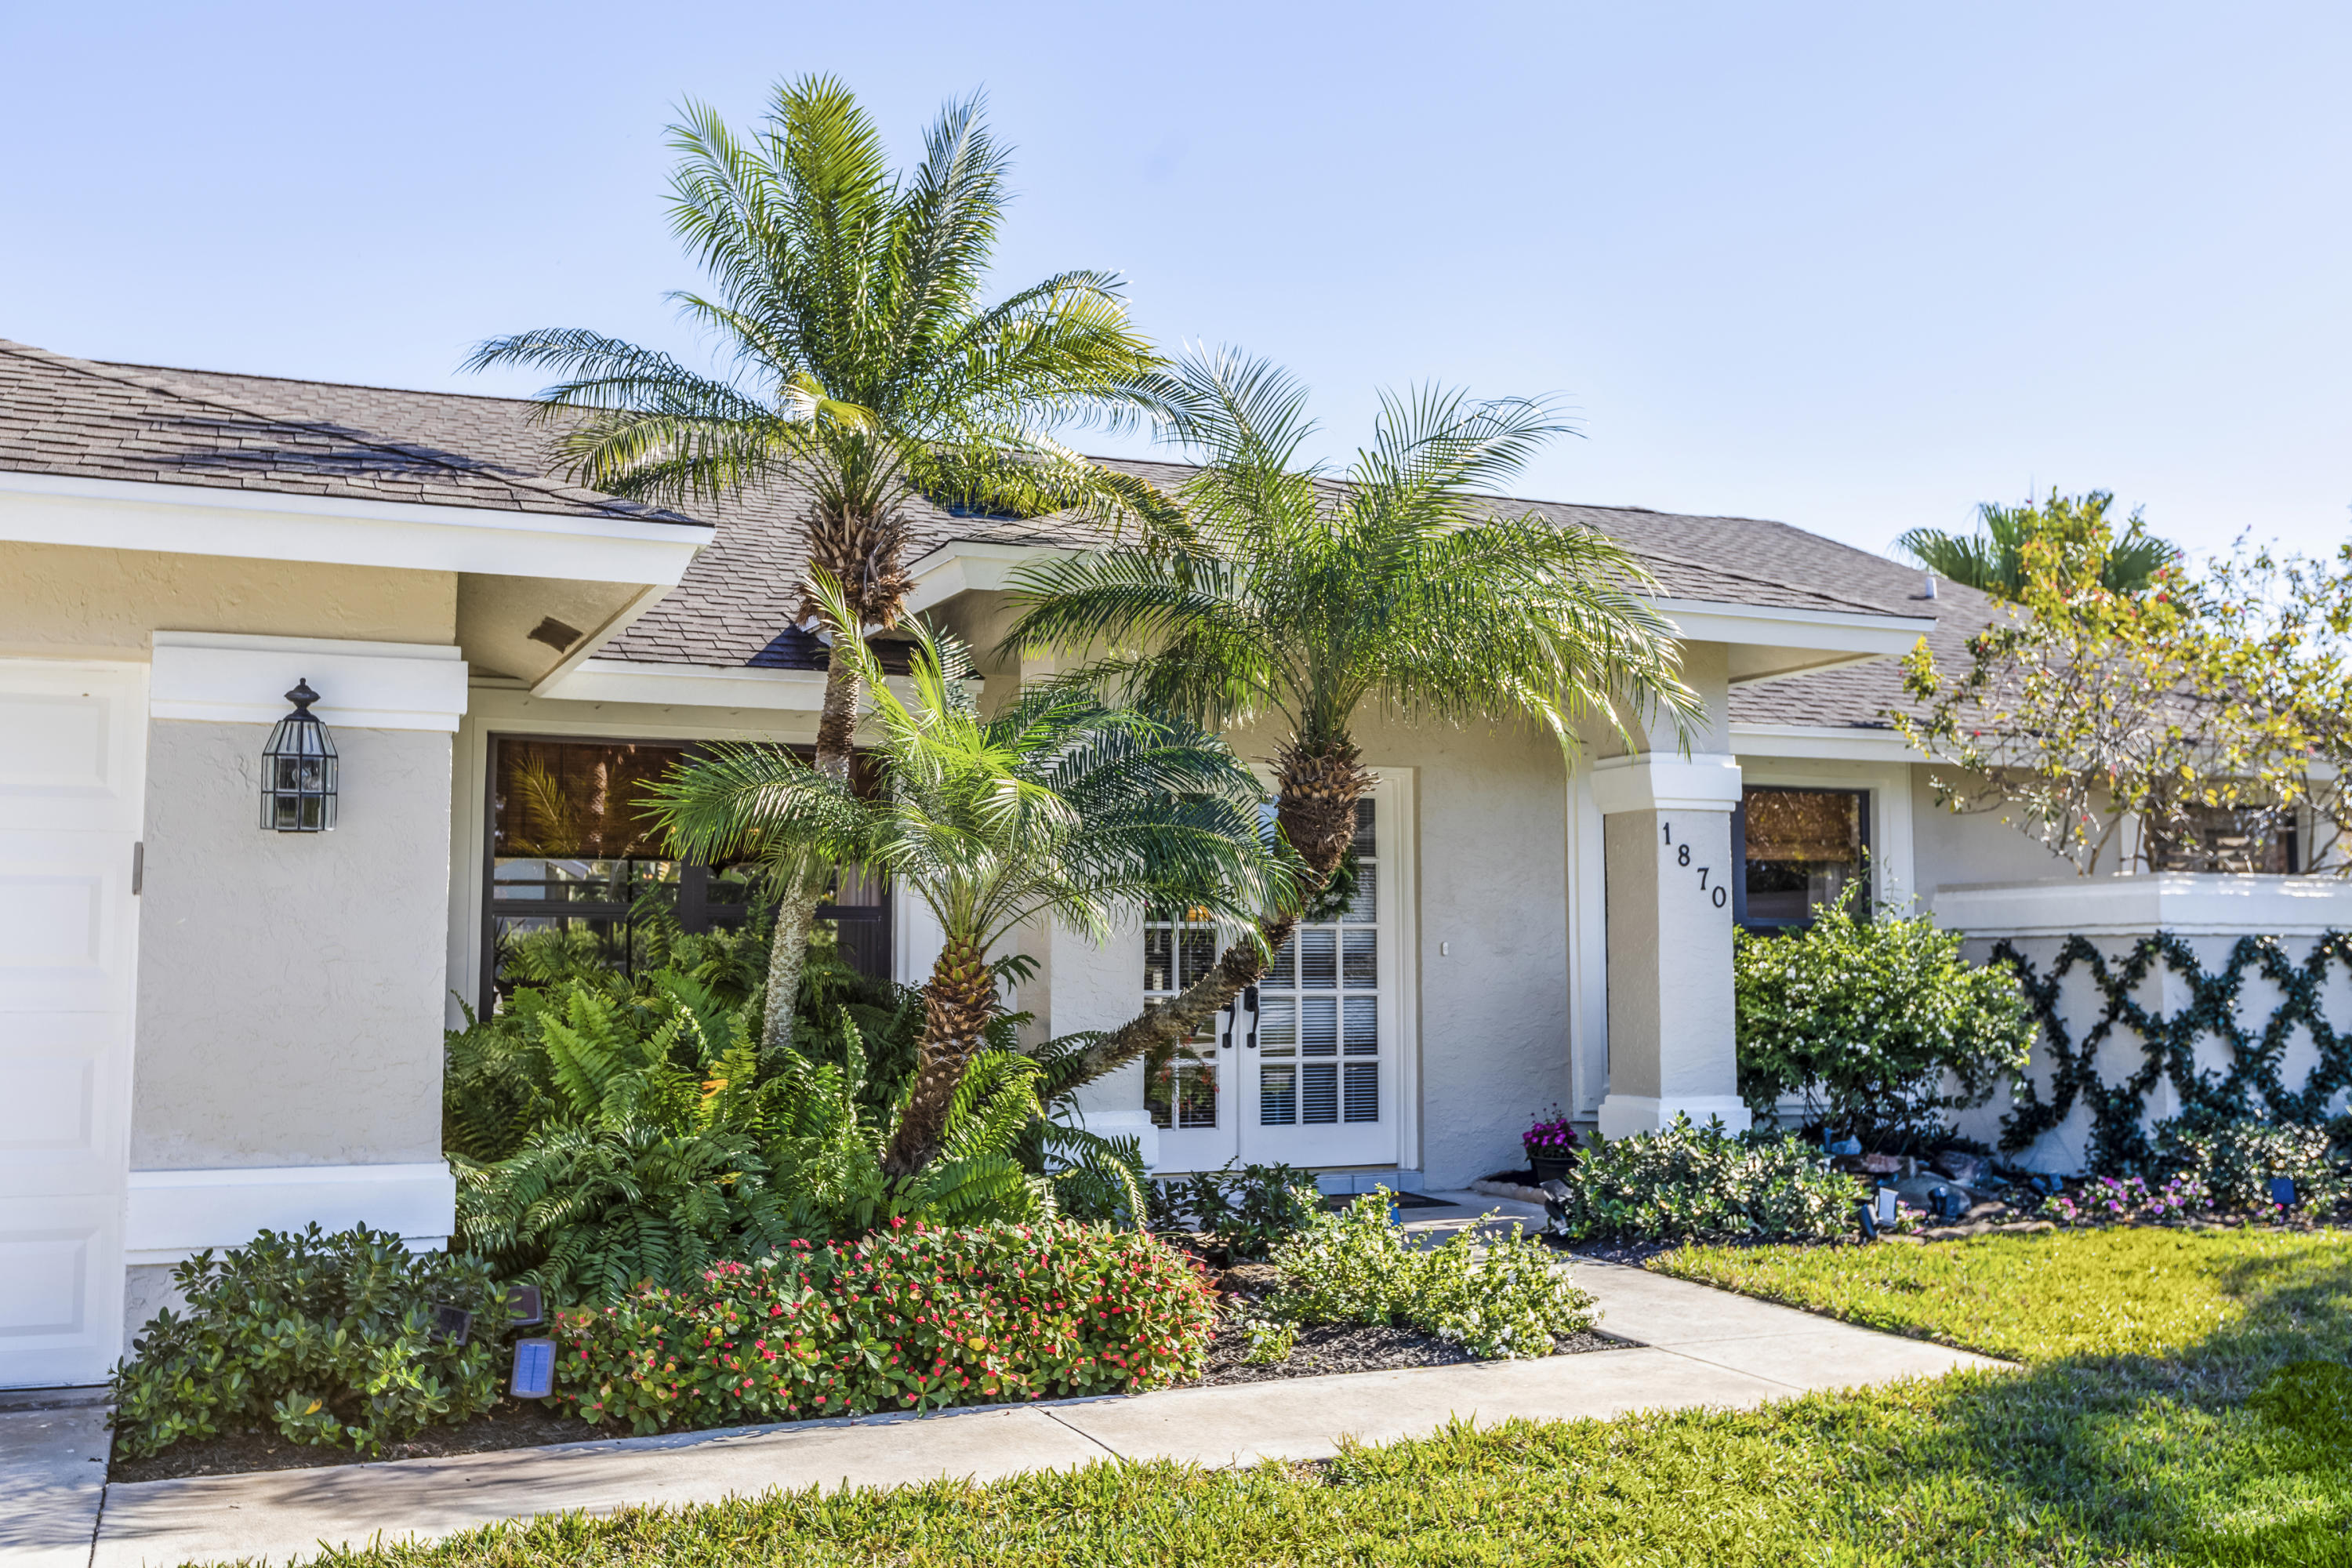 Home for sale in Greenview Shores - Wiltshire Village Wellington Florida